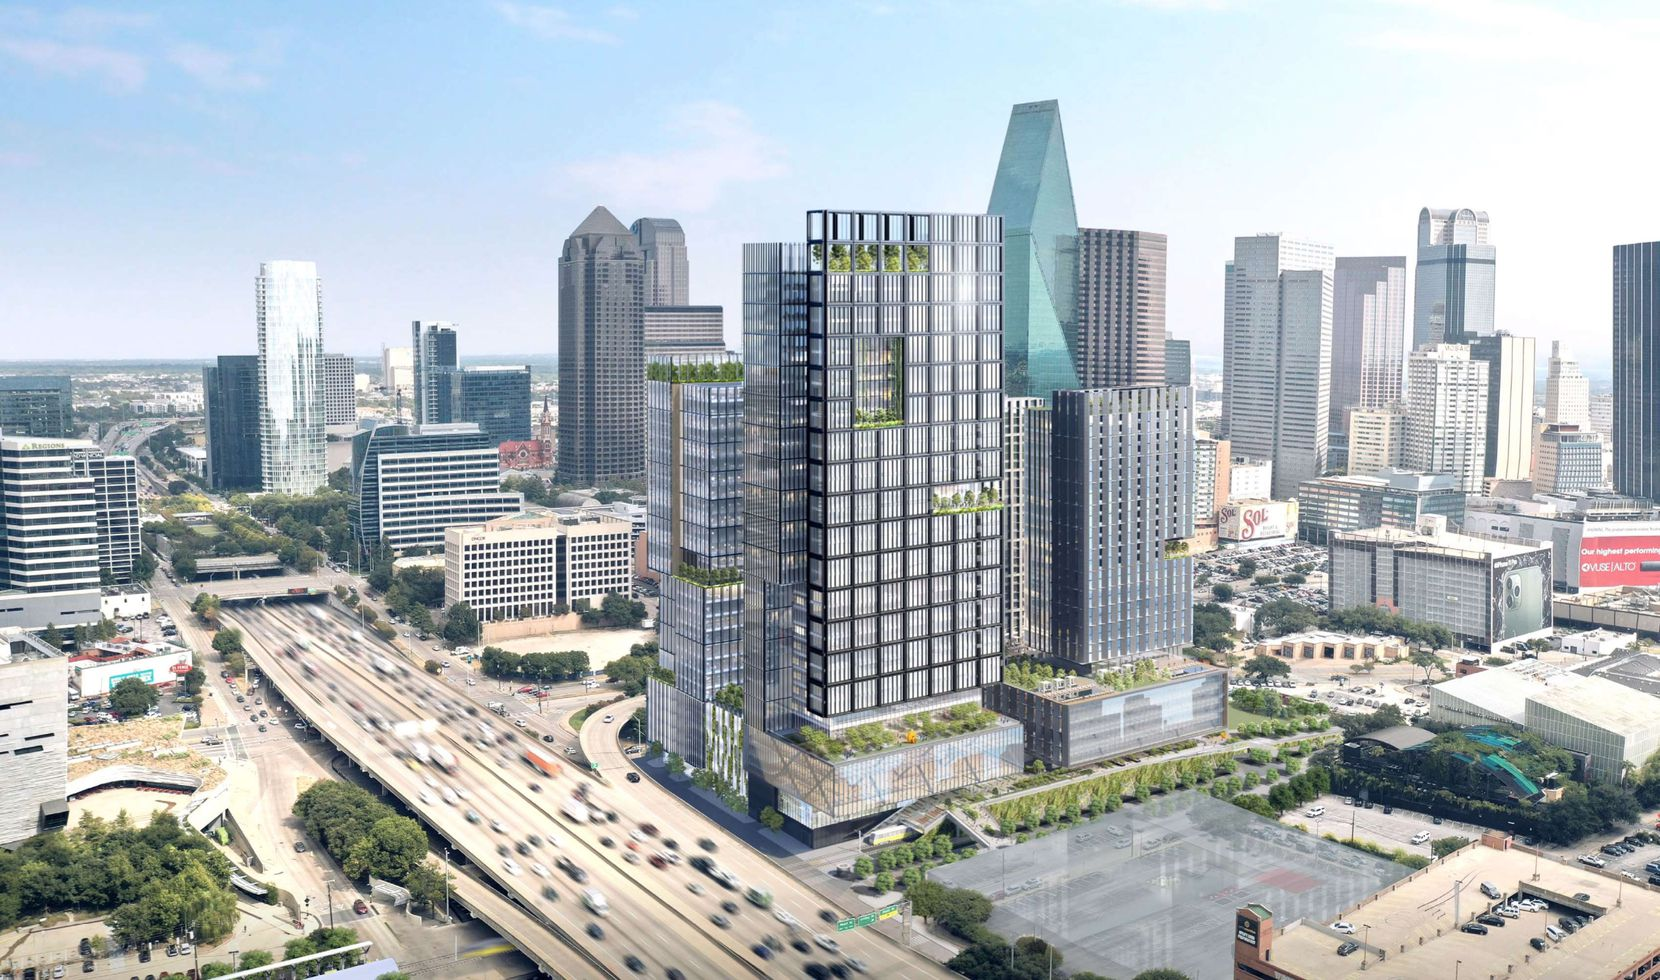 The $1 billion Field St. District is planned for up to 5 million square feet of high-rises on the northwest corner of downtown.